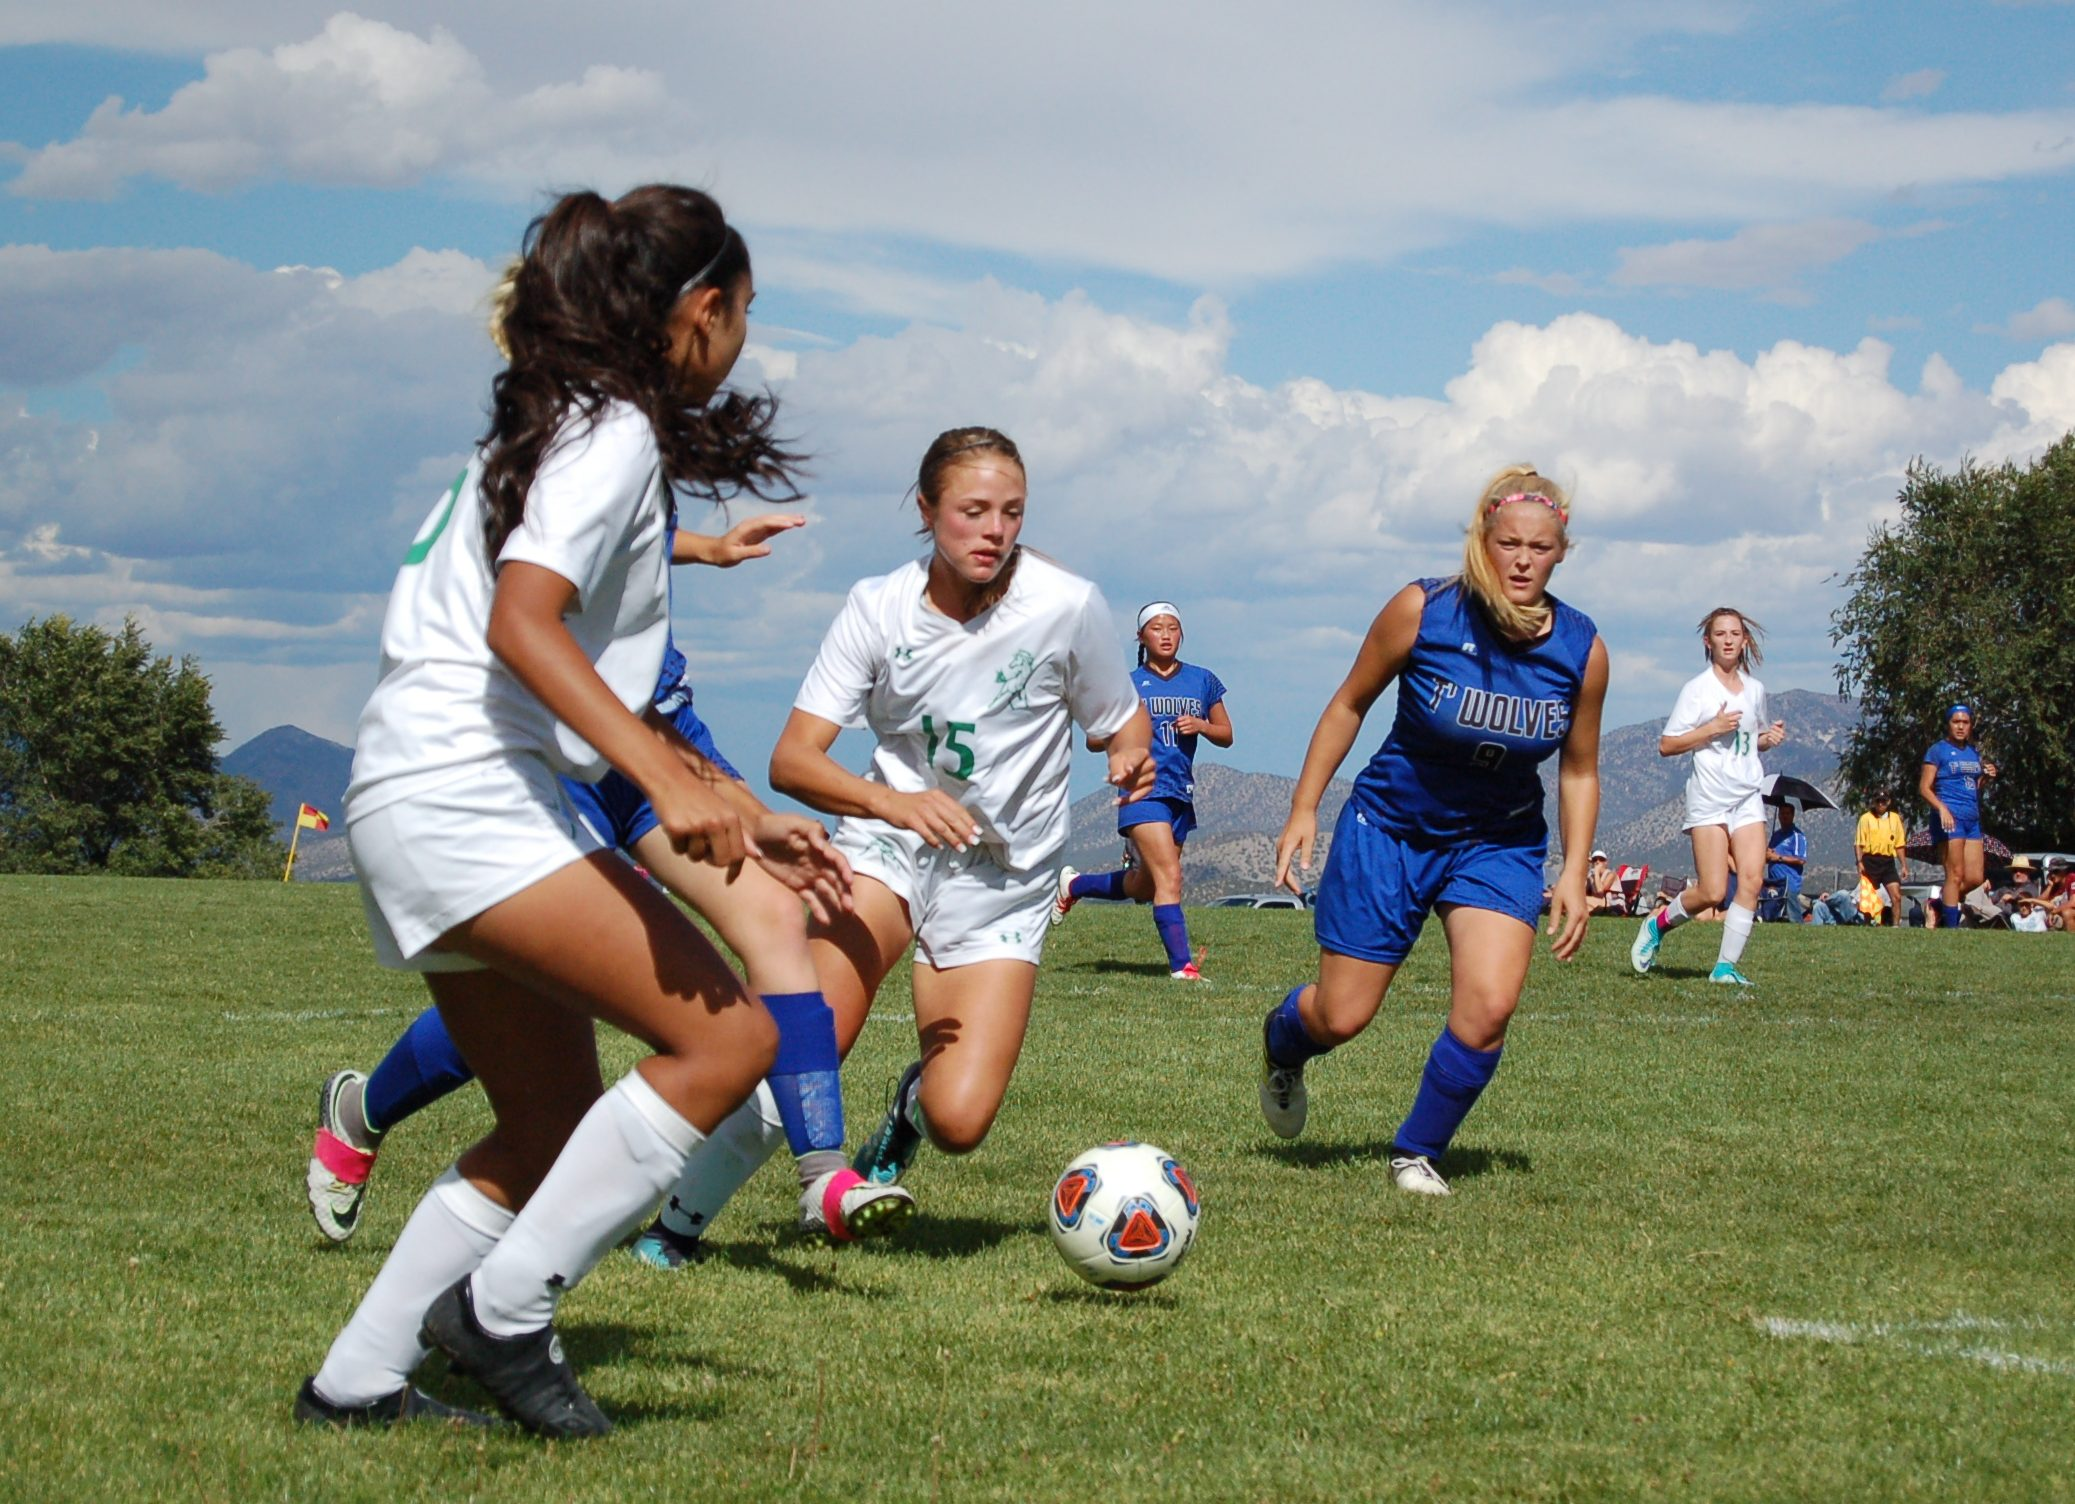 East Mountain girls soccer gets inaugural victory over Moriarty in lightning-shortened match